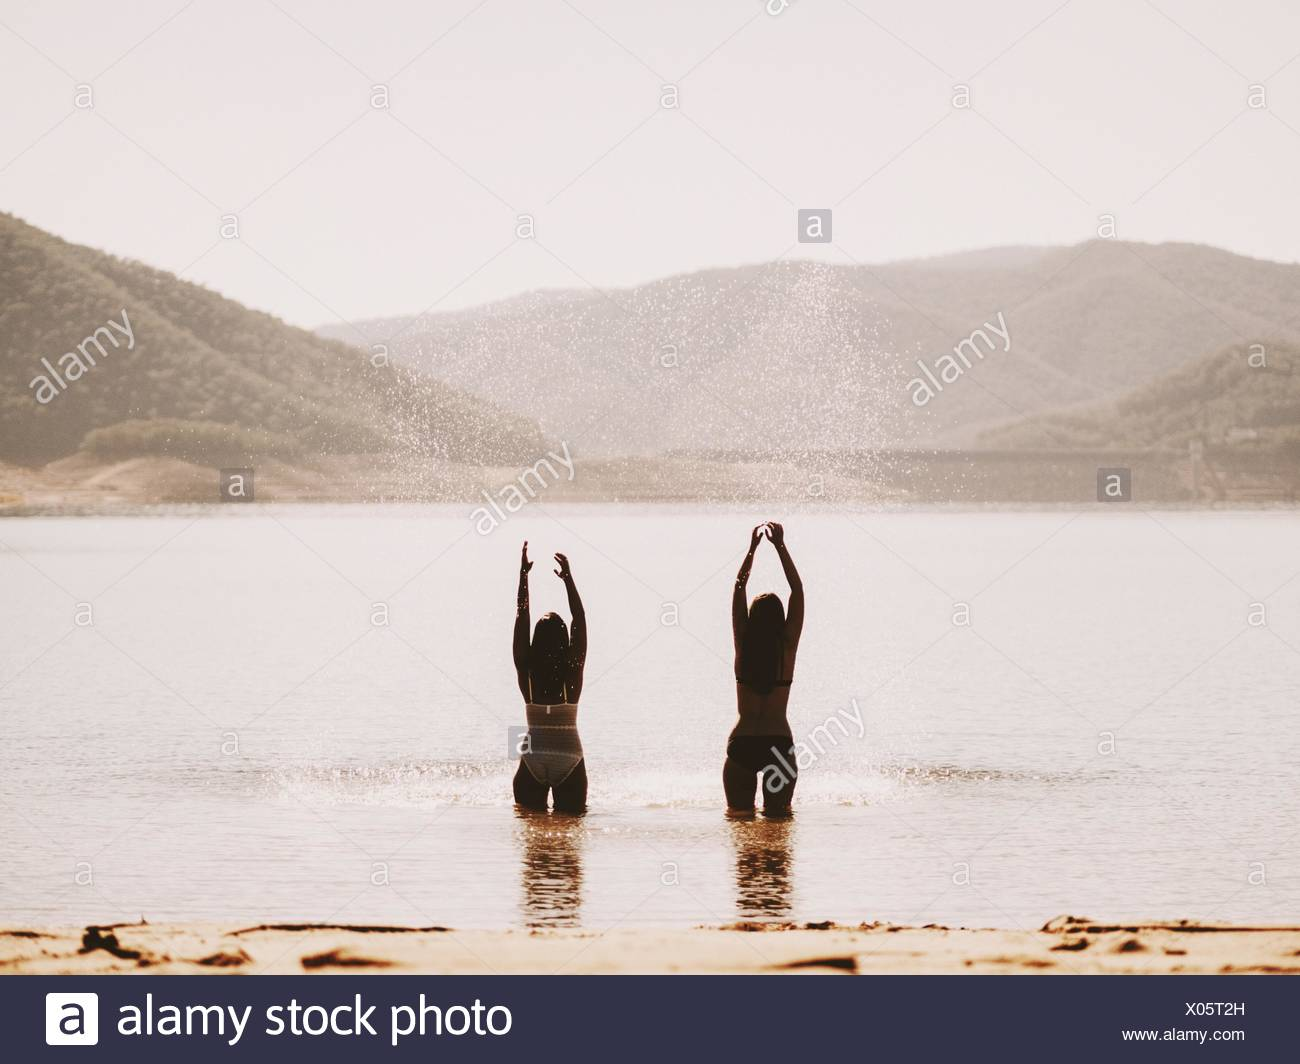 Rear View Of Friends With Arms Outstretched Standing On Beach By Mountains Against Clear Sky - Stock Image